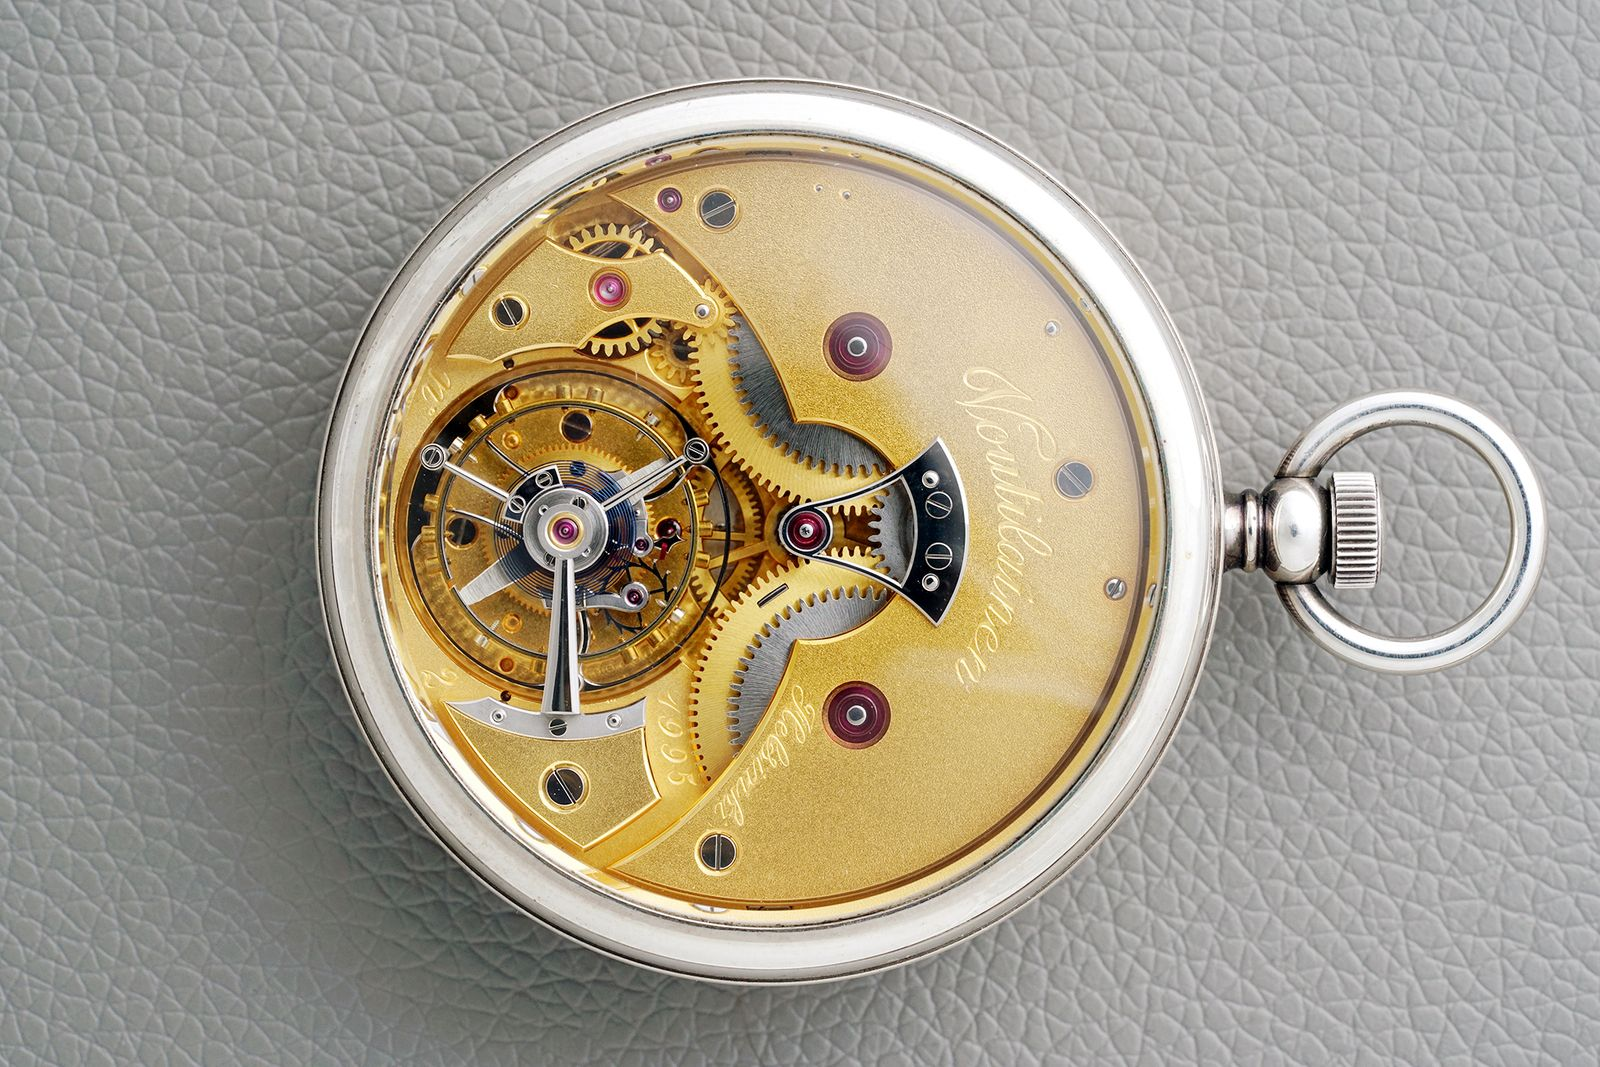 Kari Voutilainen's first tourbillon pocket watch prototype movement view